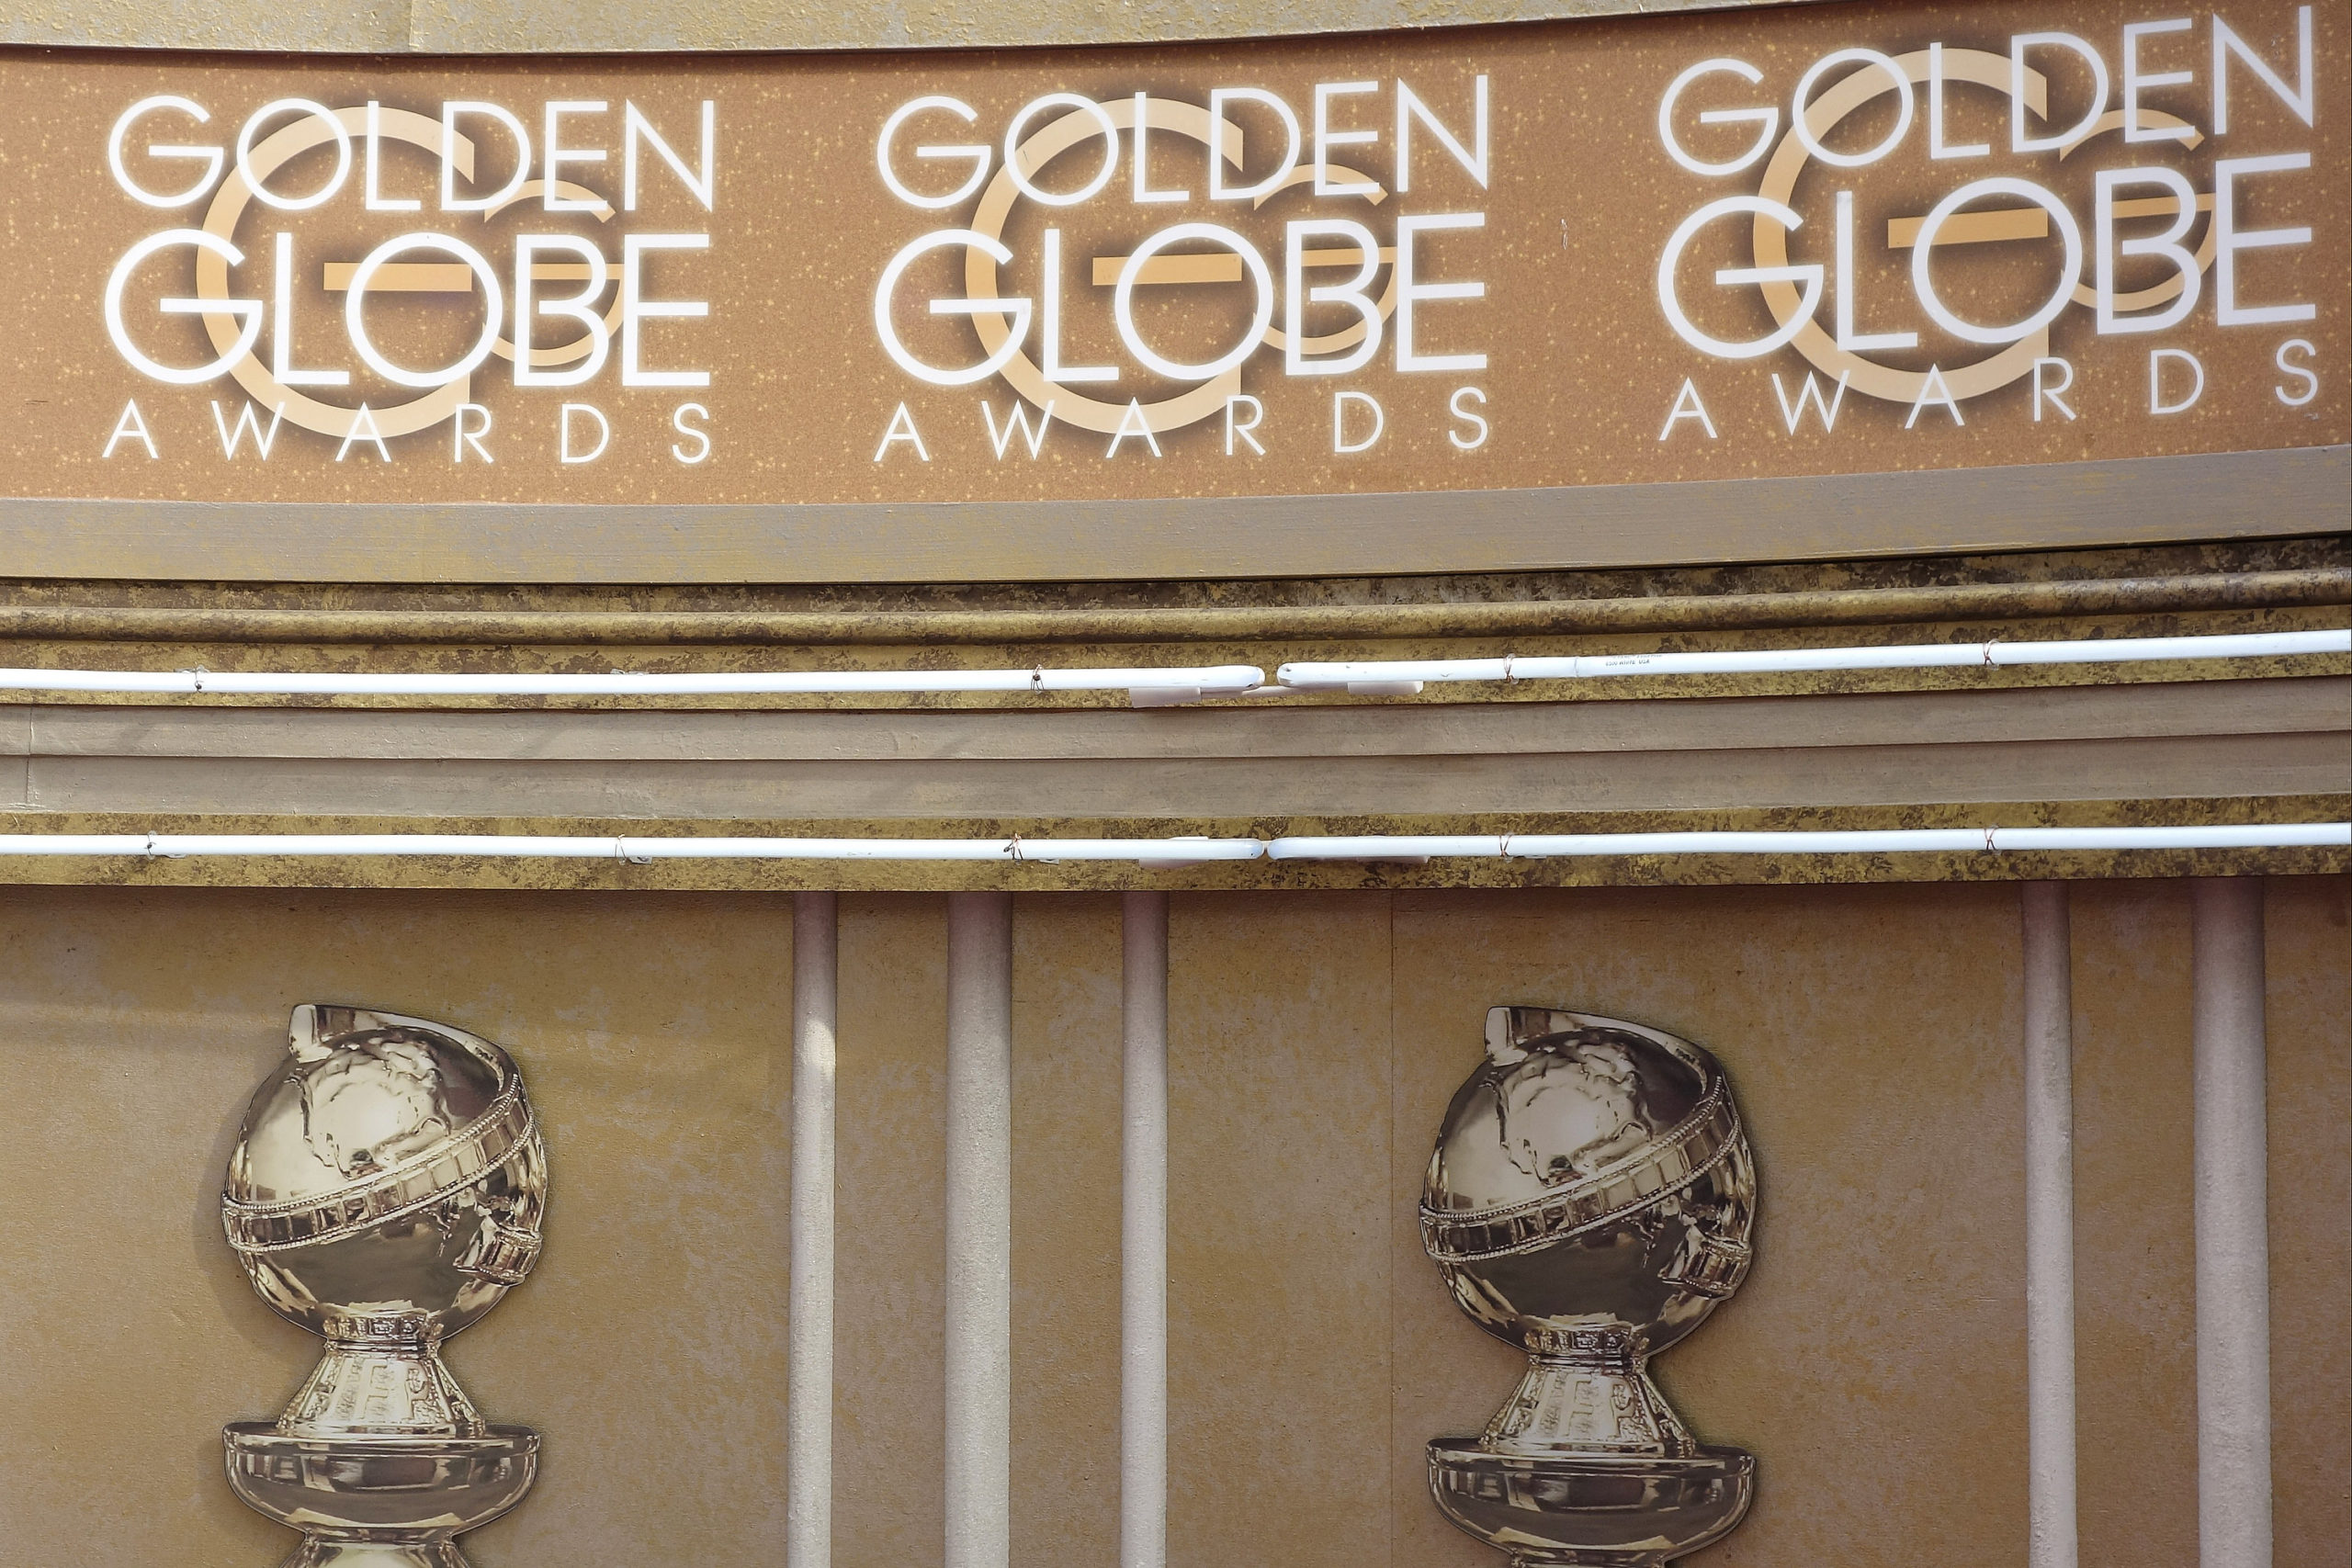 Golden Globes 2021 Predictions: Who Will Win?